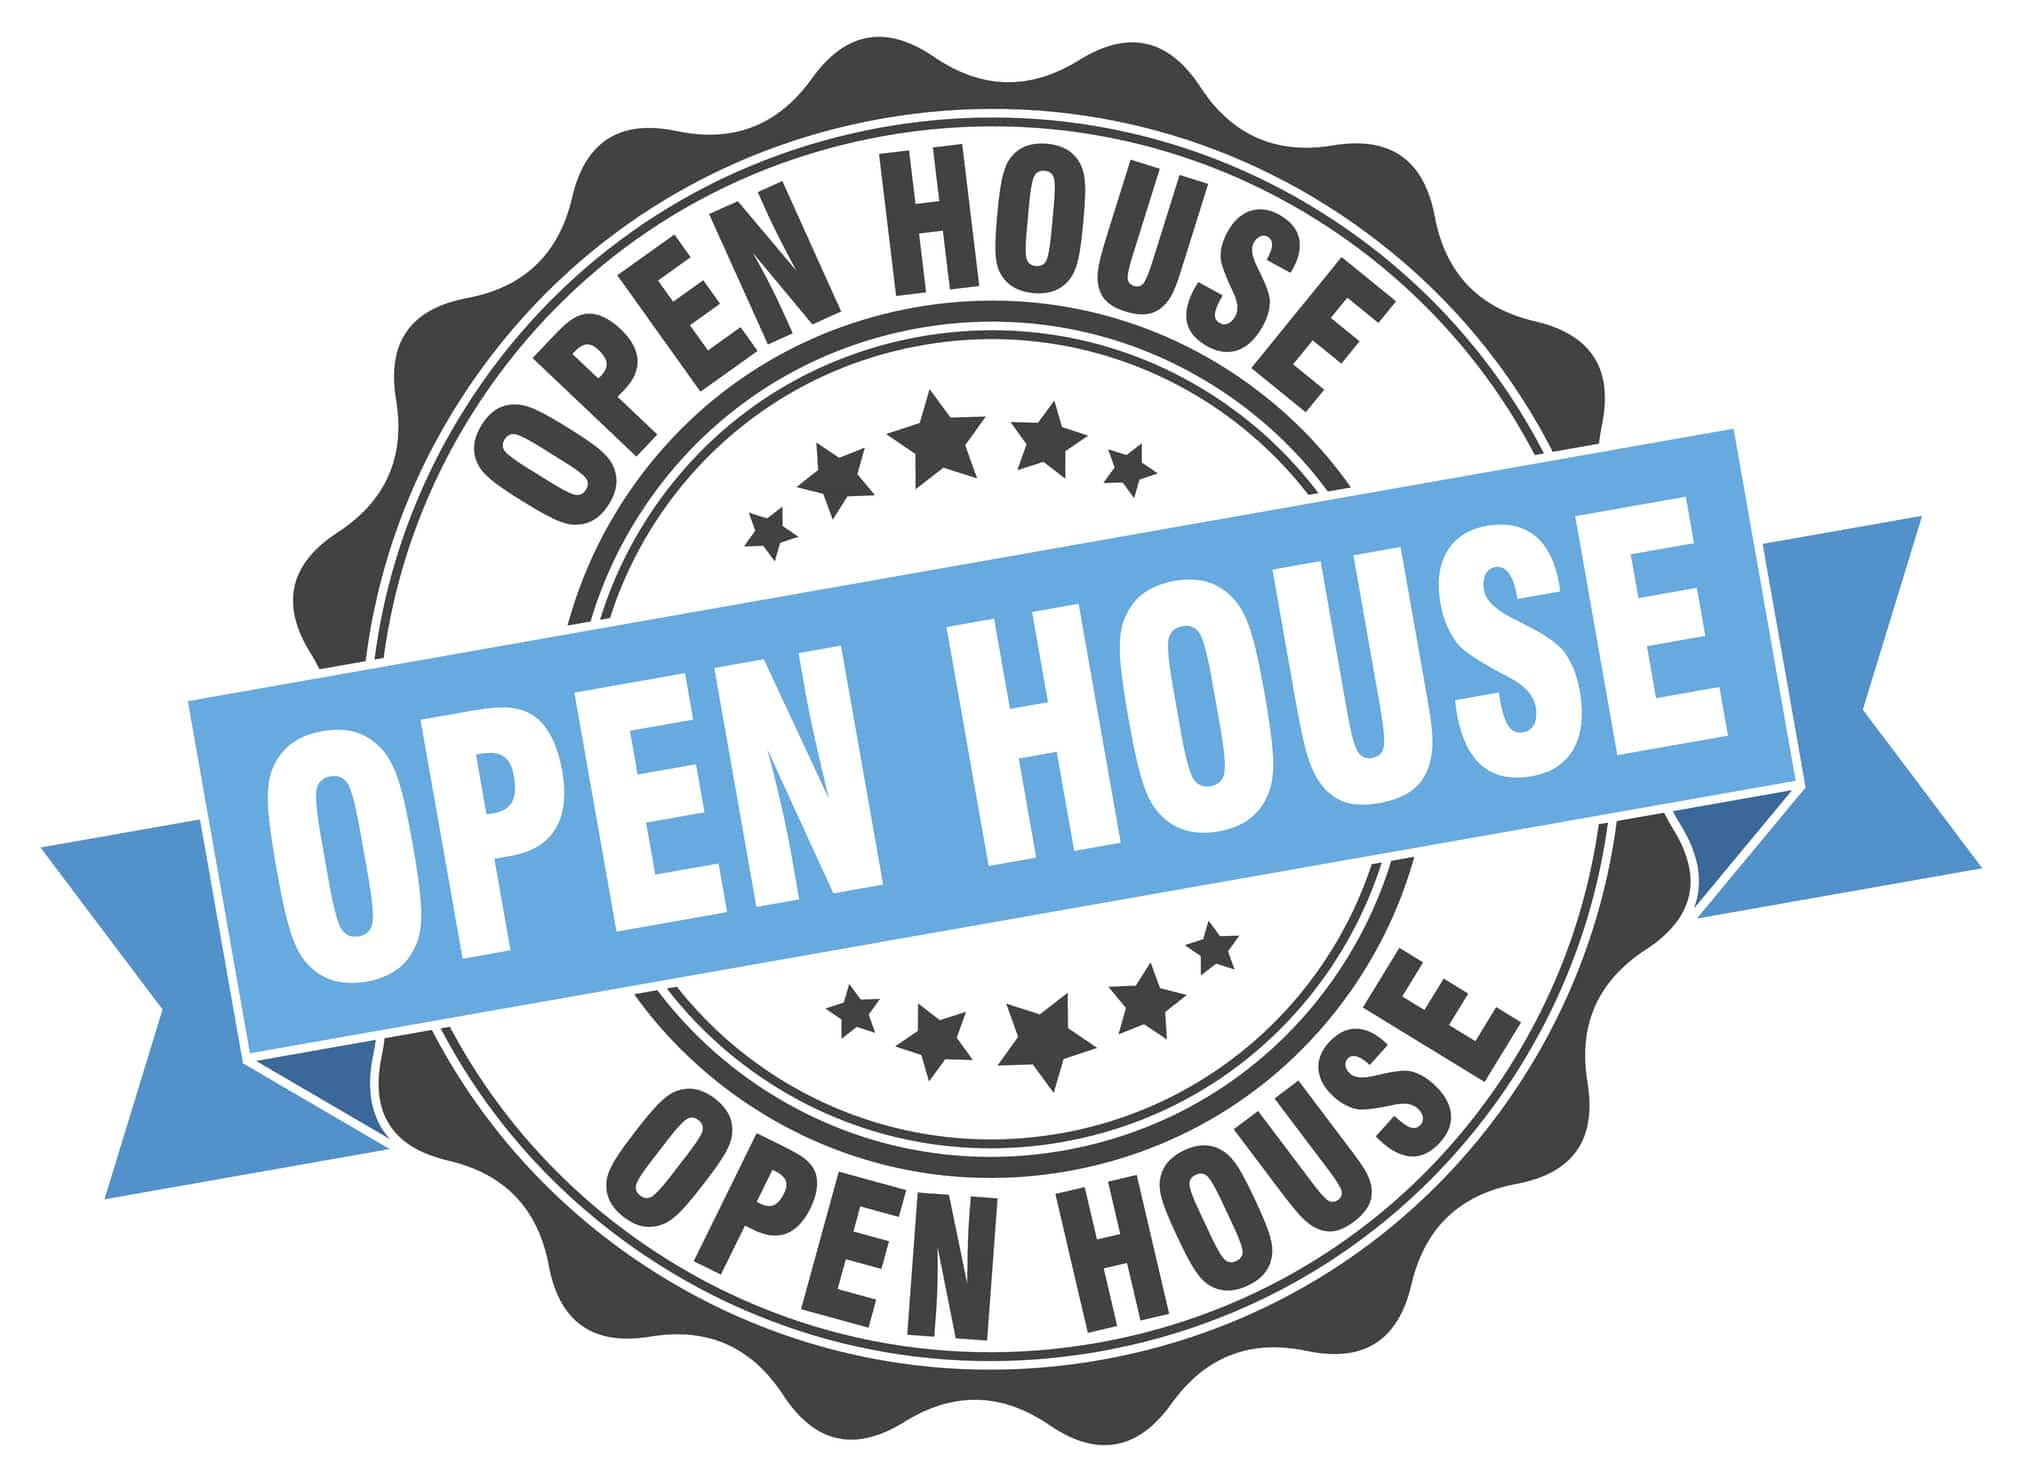 OPEN HOUSE BLUE SEAL